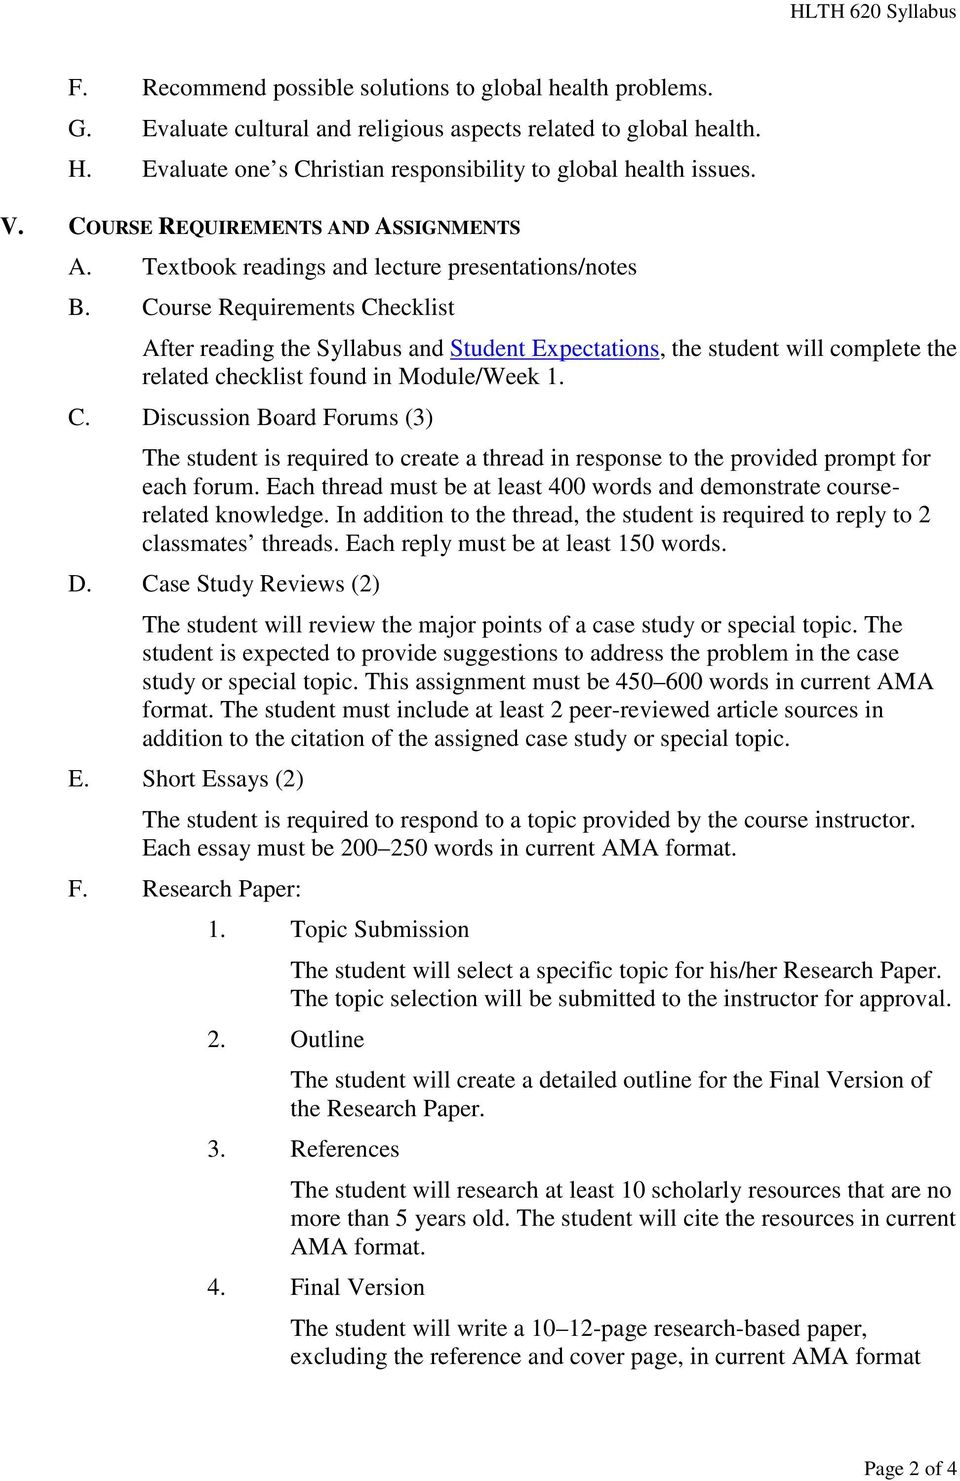 Course Requirements Checklist After reading the Syllabus and Student Expectations, the student will complete the related checklist found in Module/Week 1. C. Discussion Board Forums (3) The student is required to create a thread in response to the provided prompt for each forum.